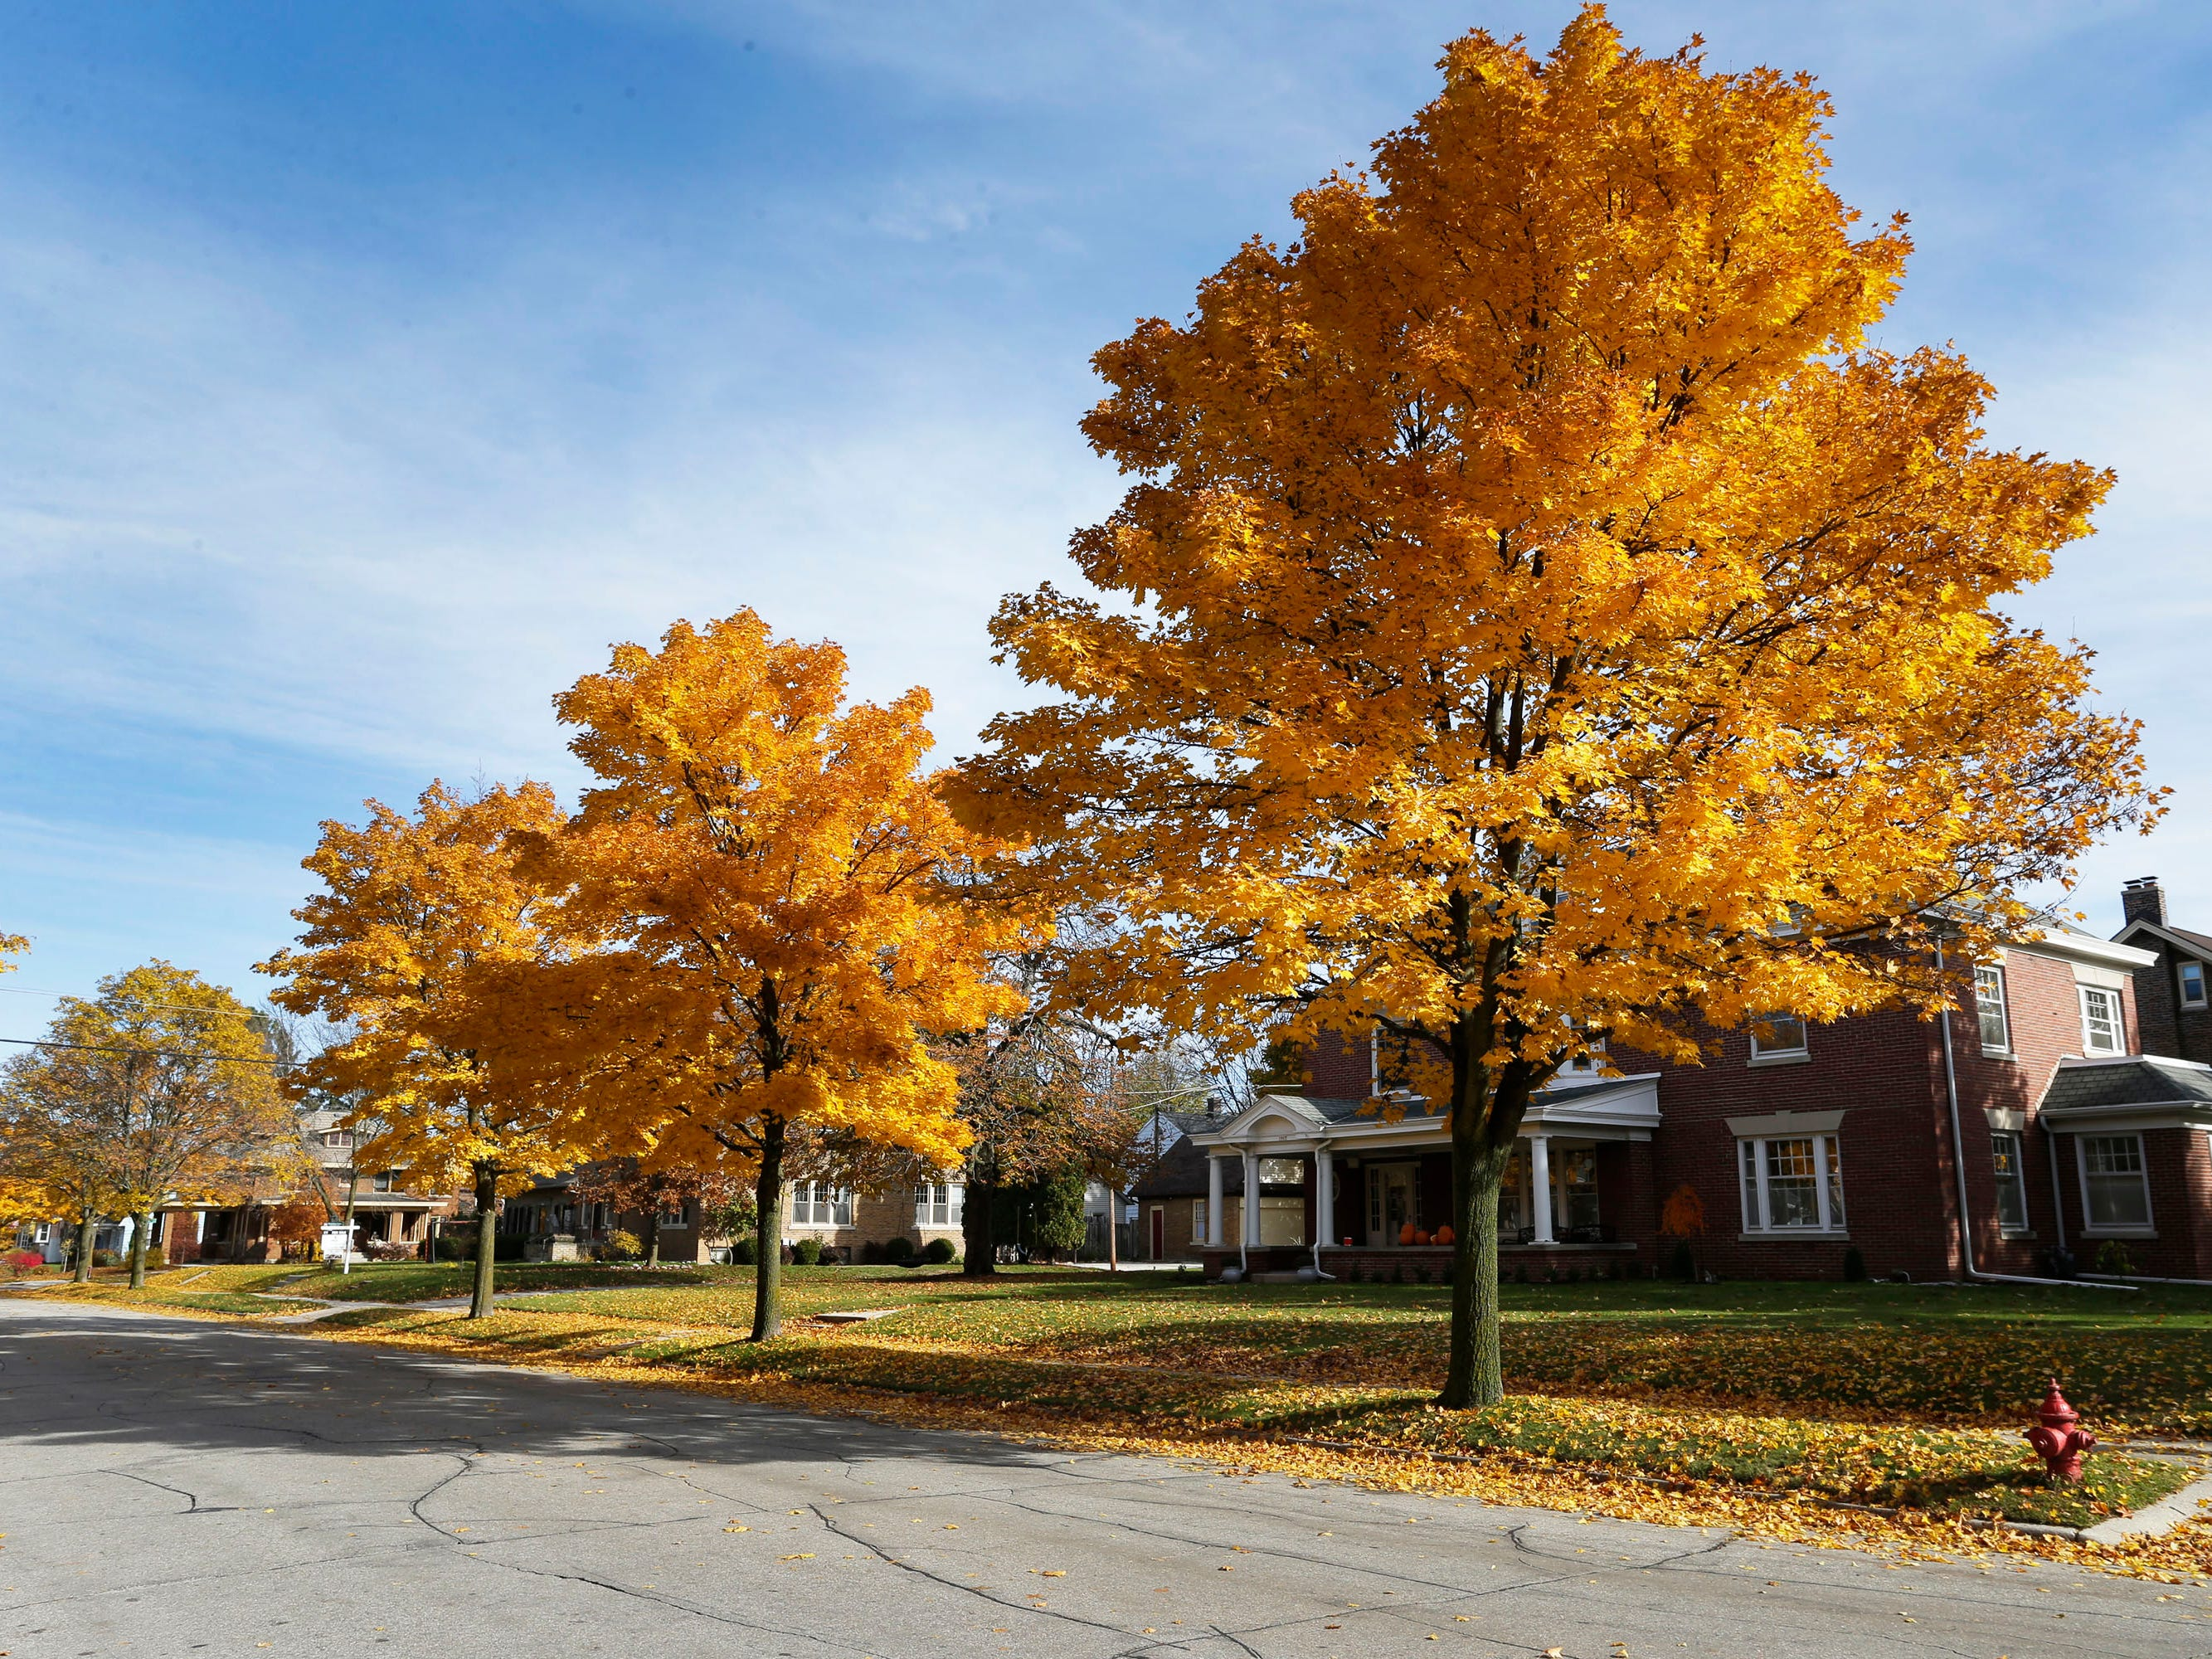 Fall color stand out like soldiers along North 4th Street near Lincoln Avenue, Wednesday, October 31, 2018, in Sheboygan, Wis.